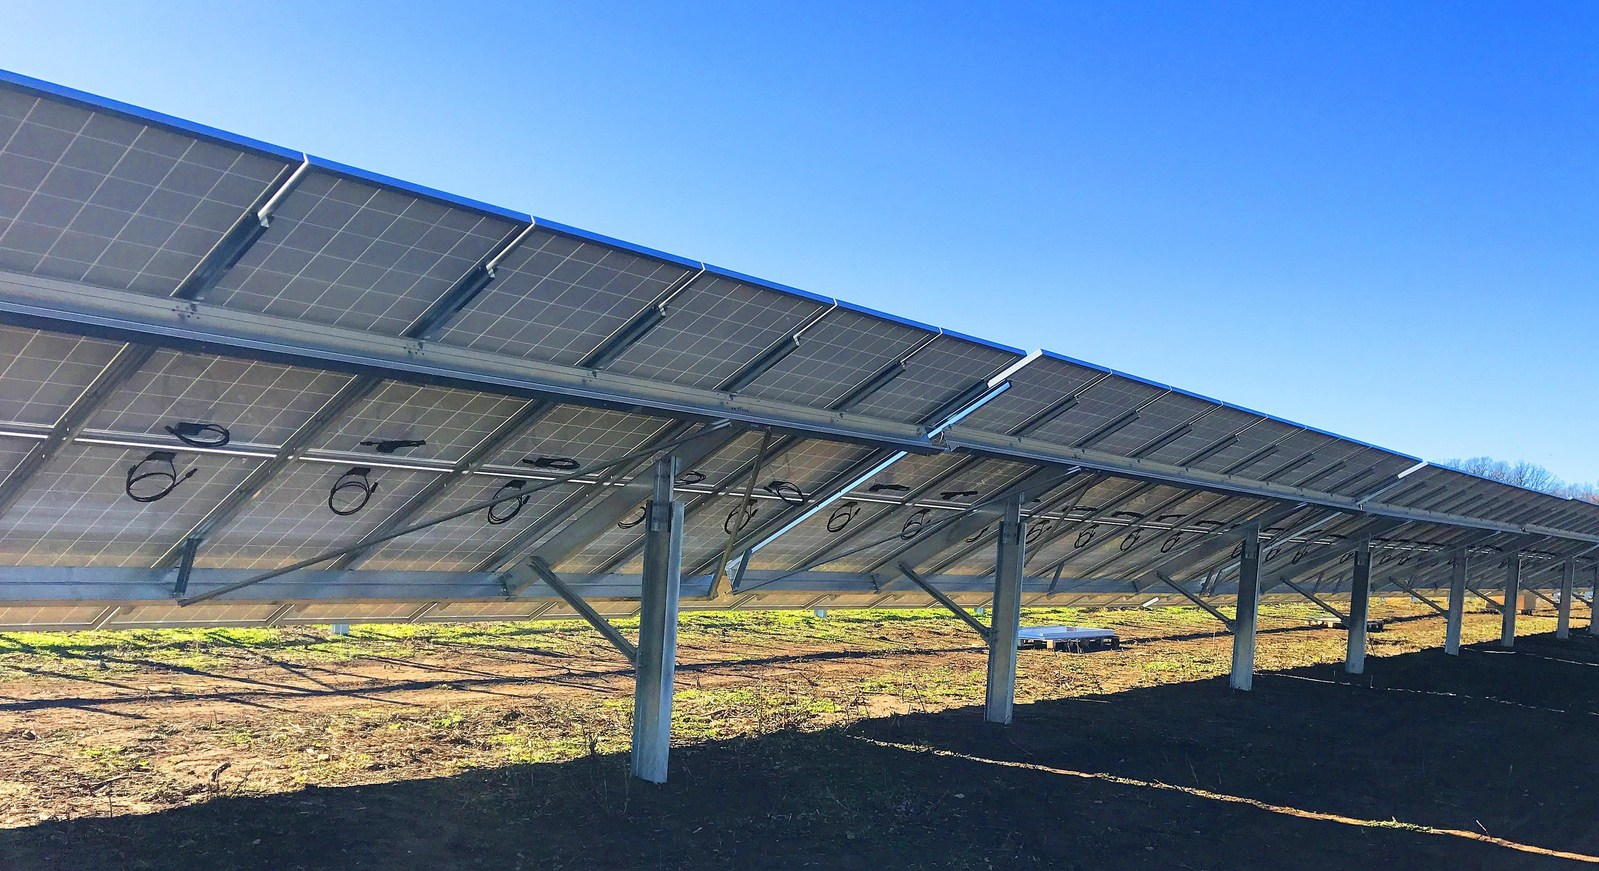 The pipeline features nine community solar projects under development by SunShare. Image: Solar FlexRack